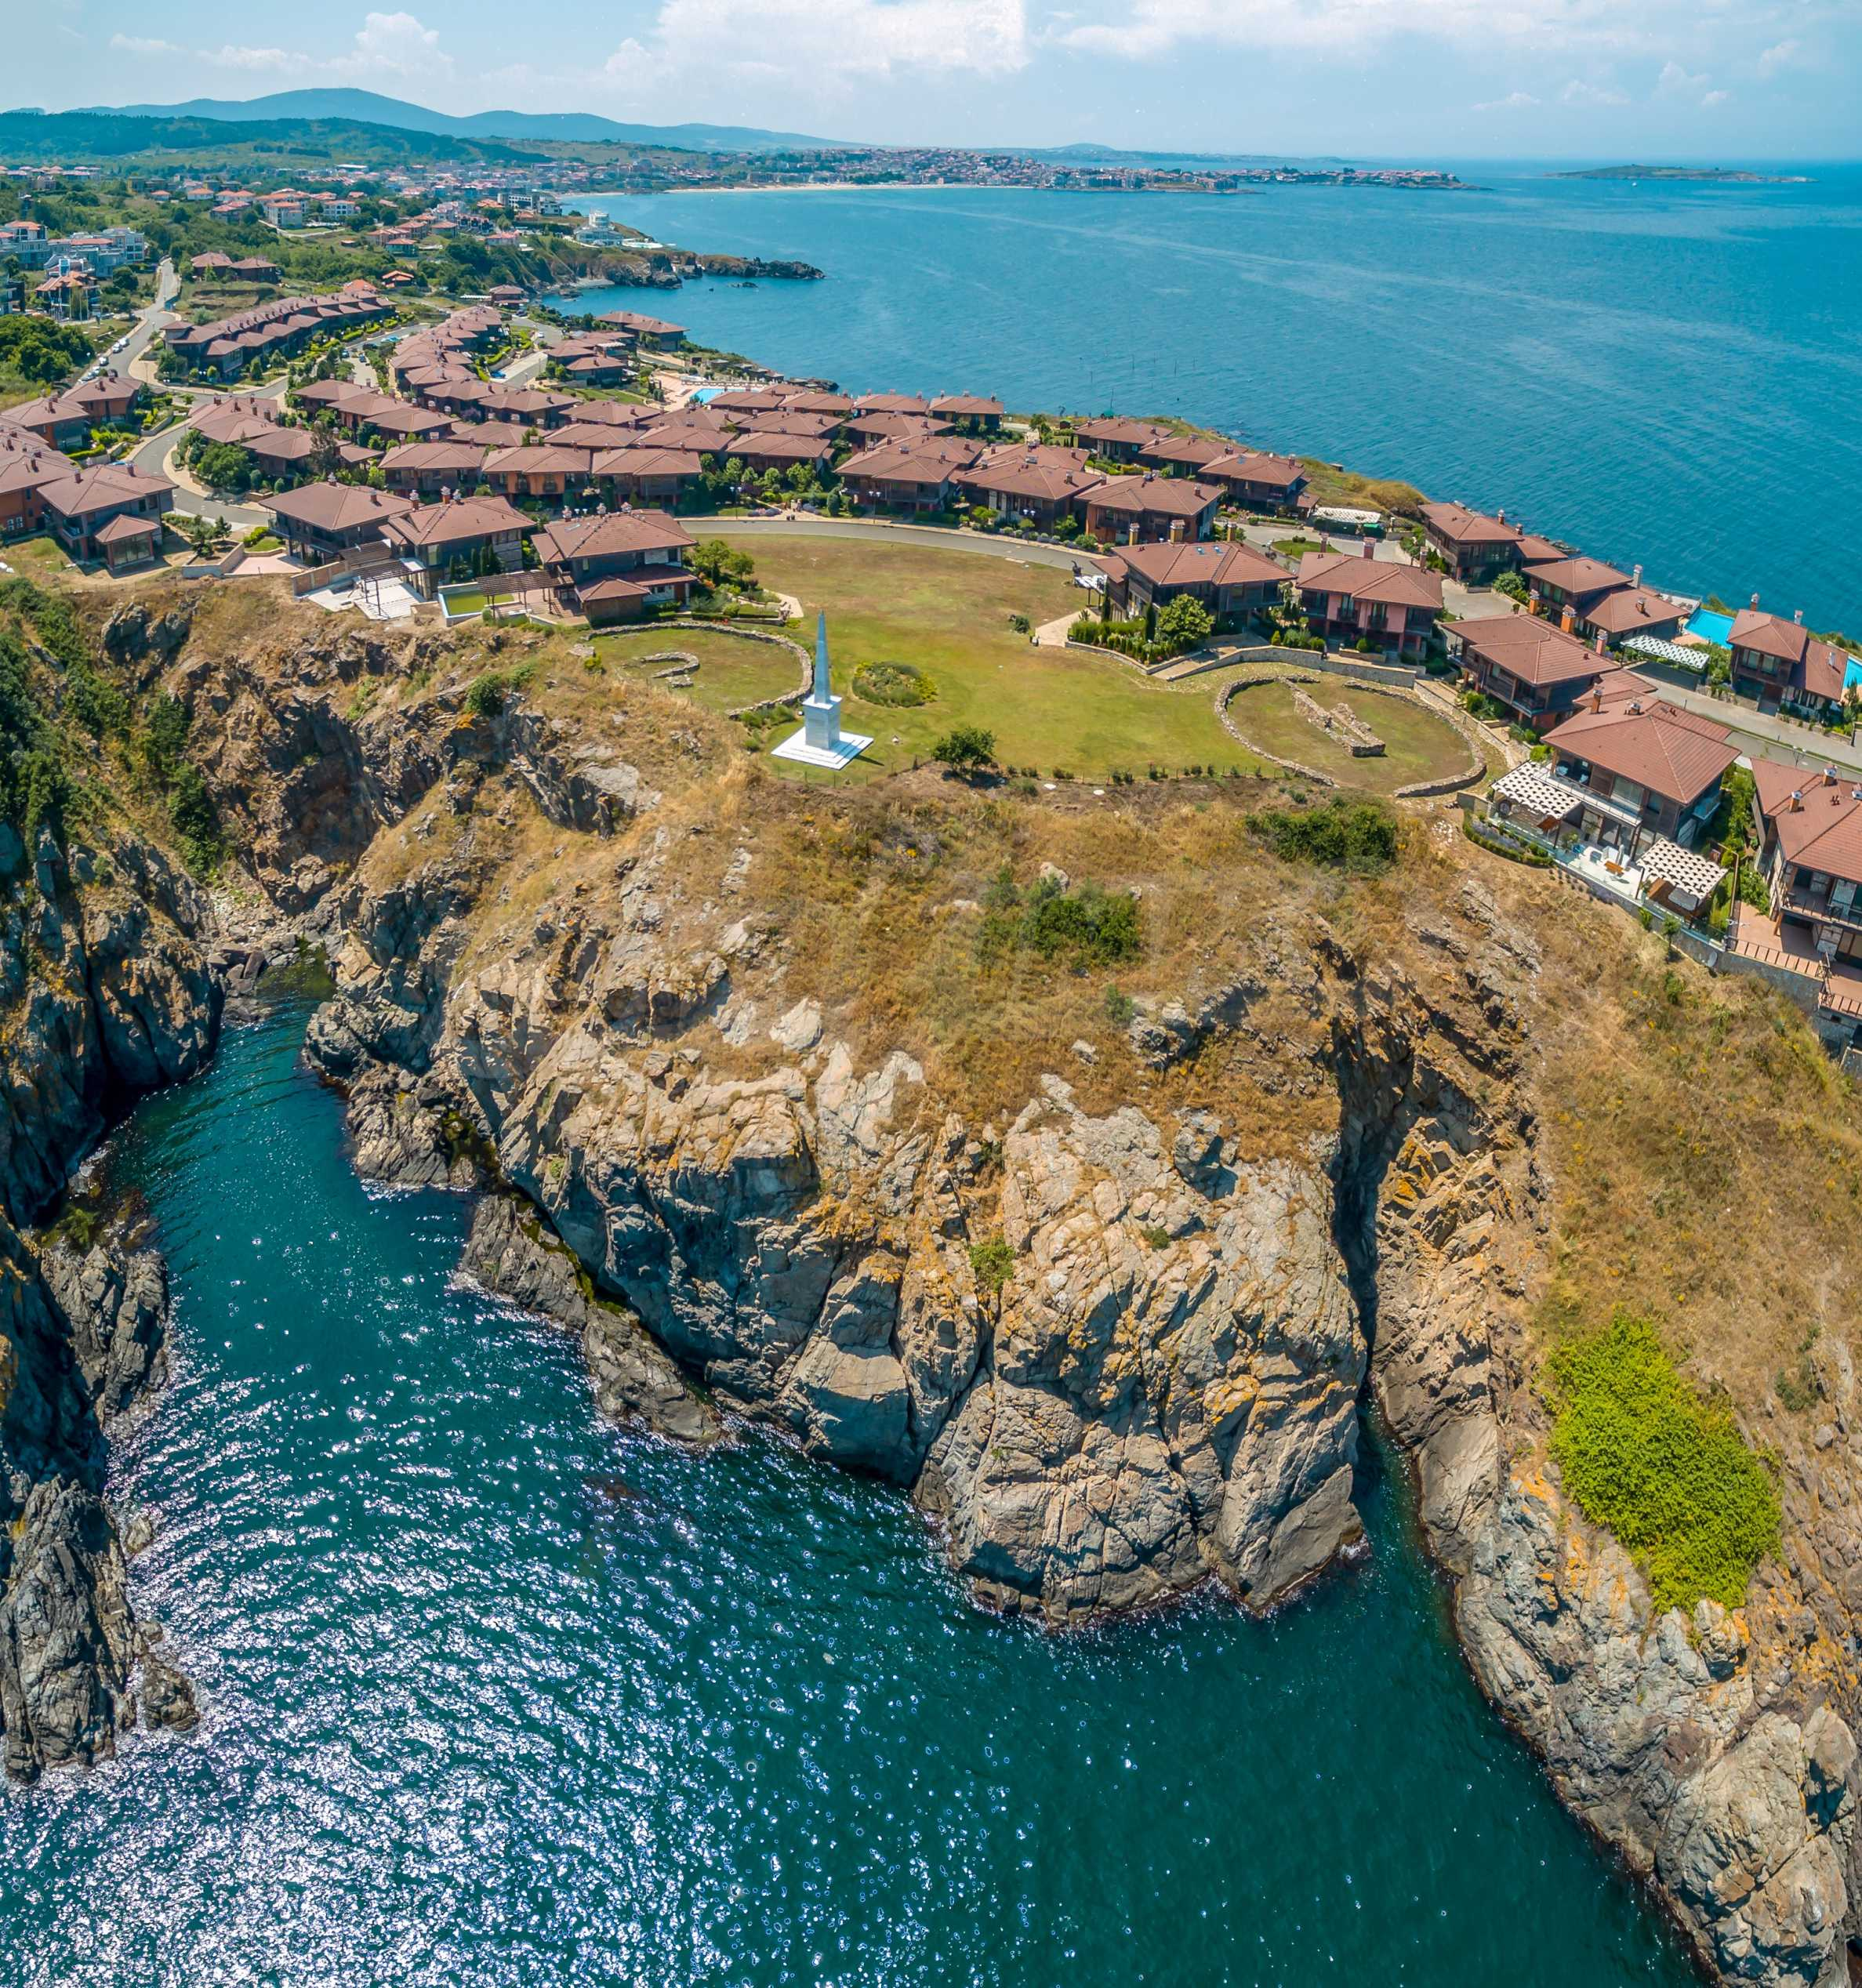 Sozopolis - unique coastal complex of townhouses and apartments near Sozopol 55